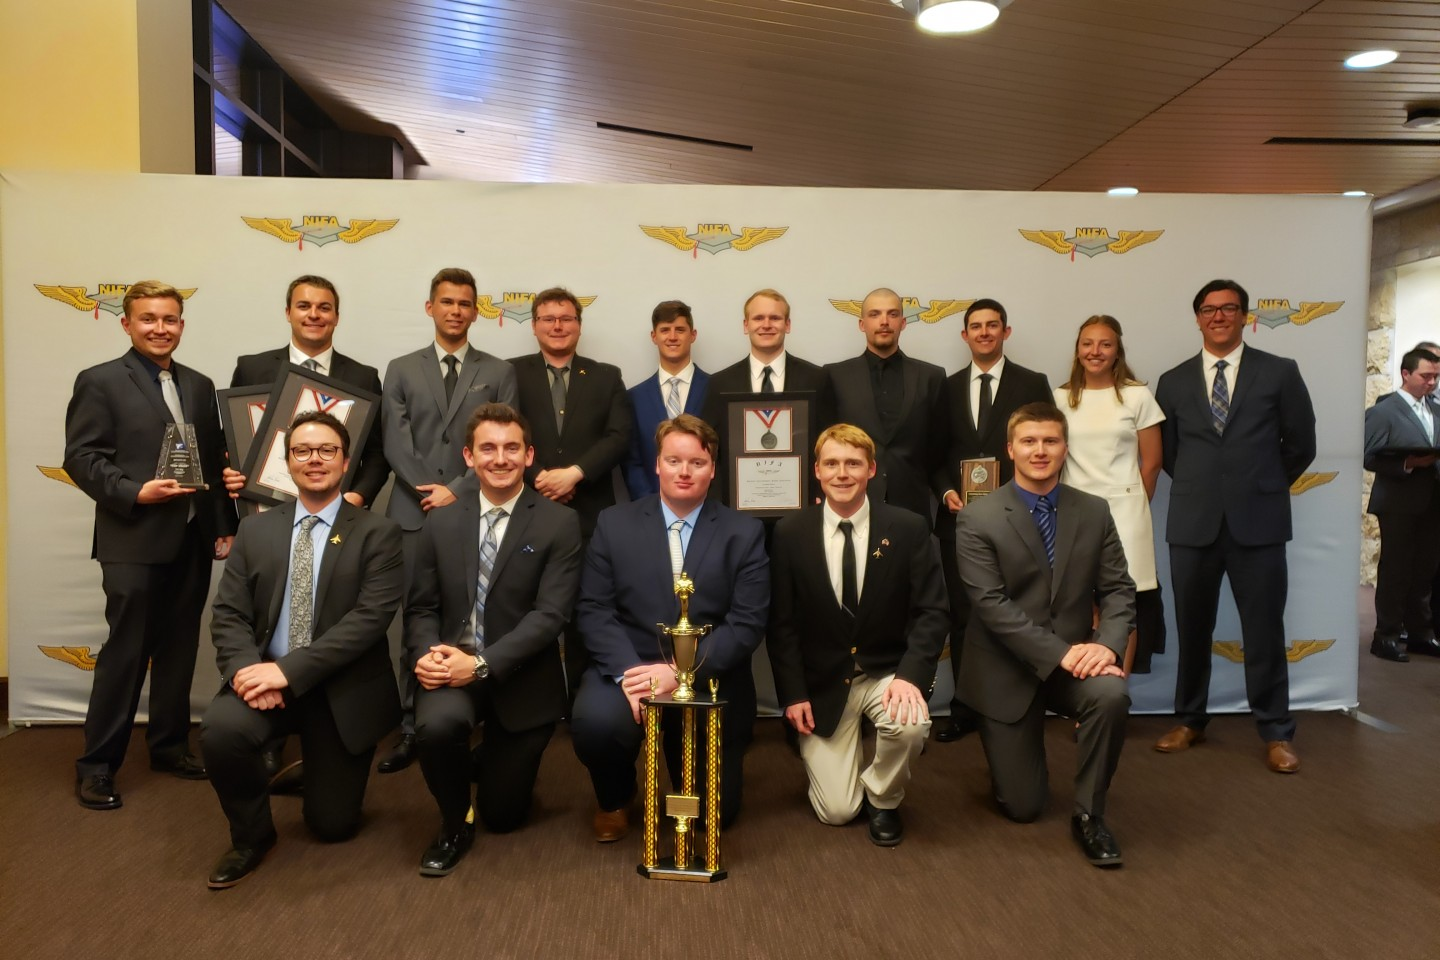 Photo of the 2019 Sky Bronco flight team posing with a trophy and various plaques.